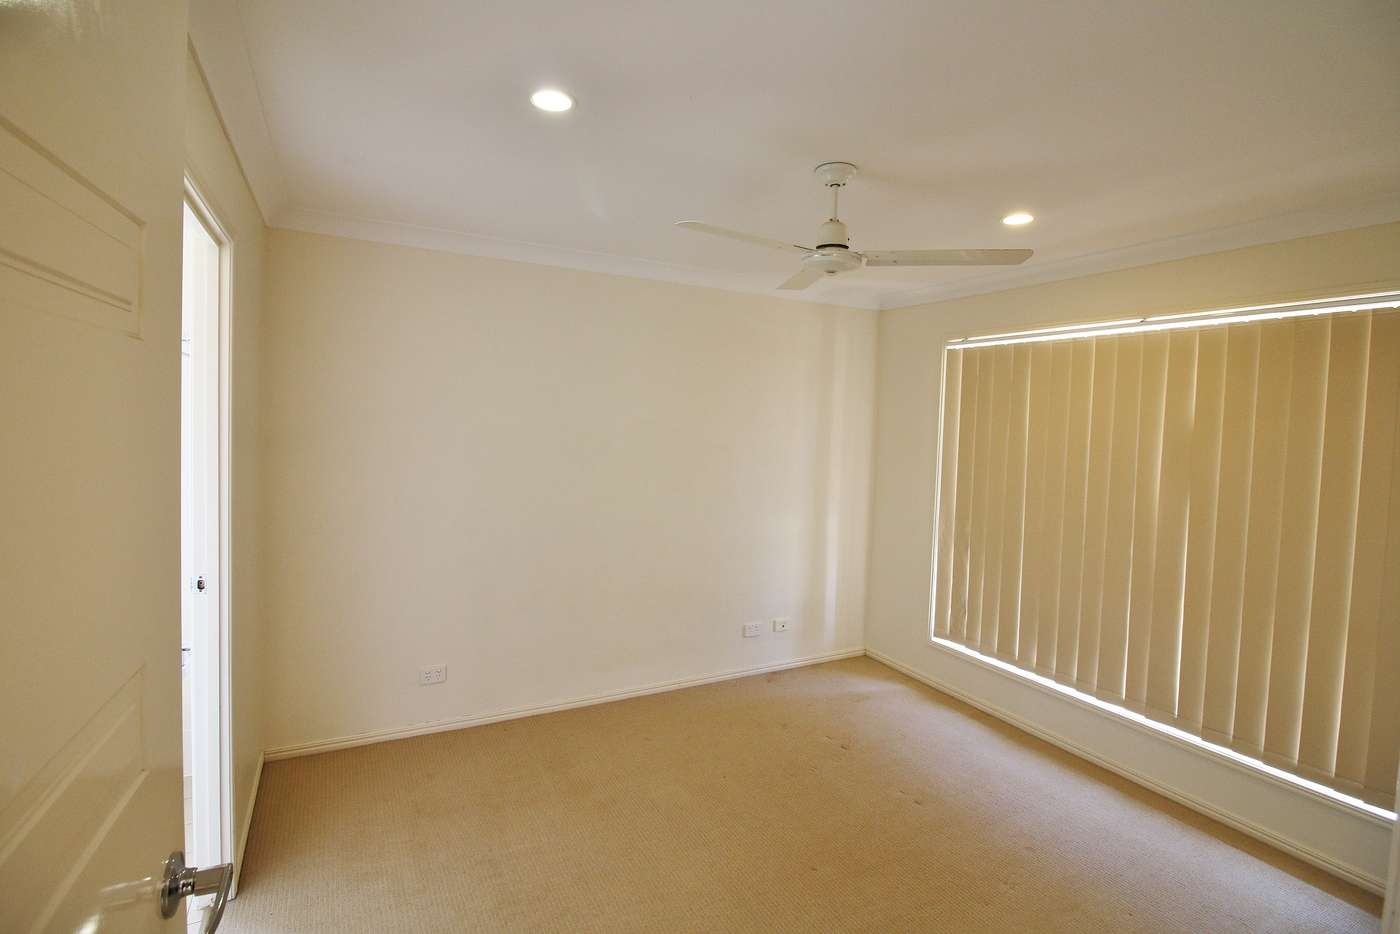 Sixth view of Homely house listing, 11 Stanford Pl, Laidley QLD 4341